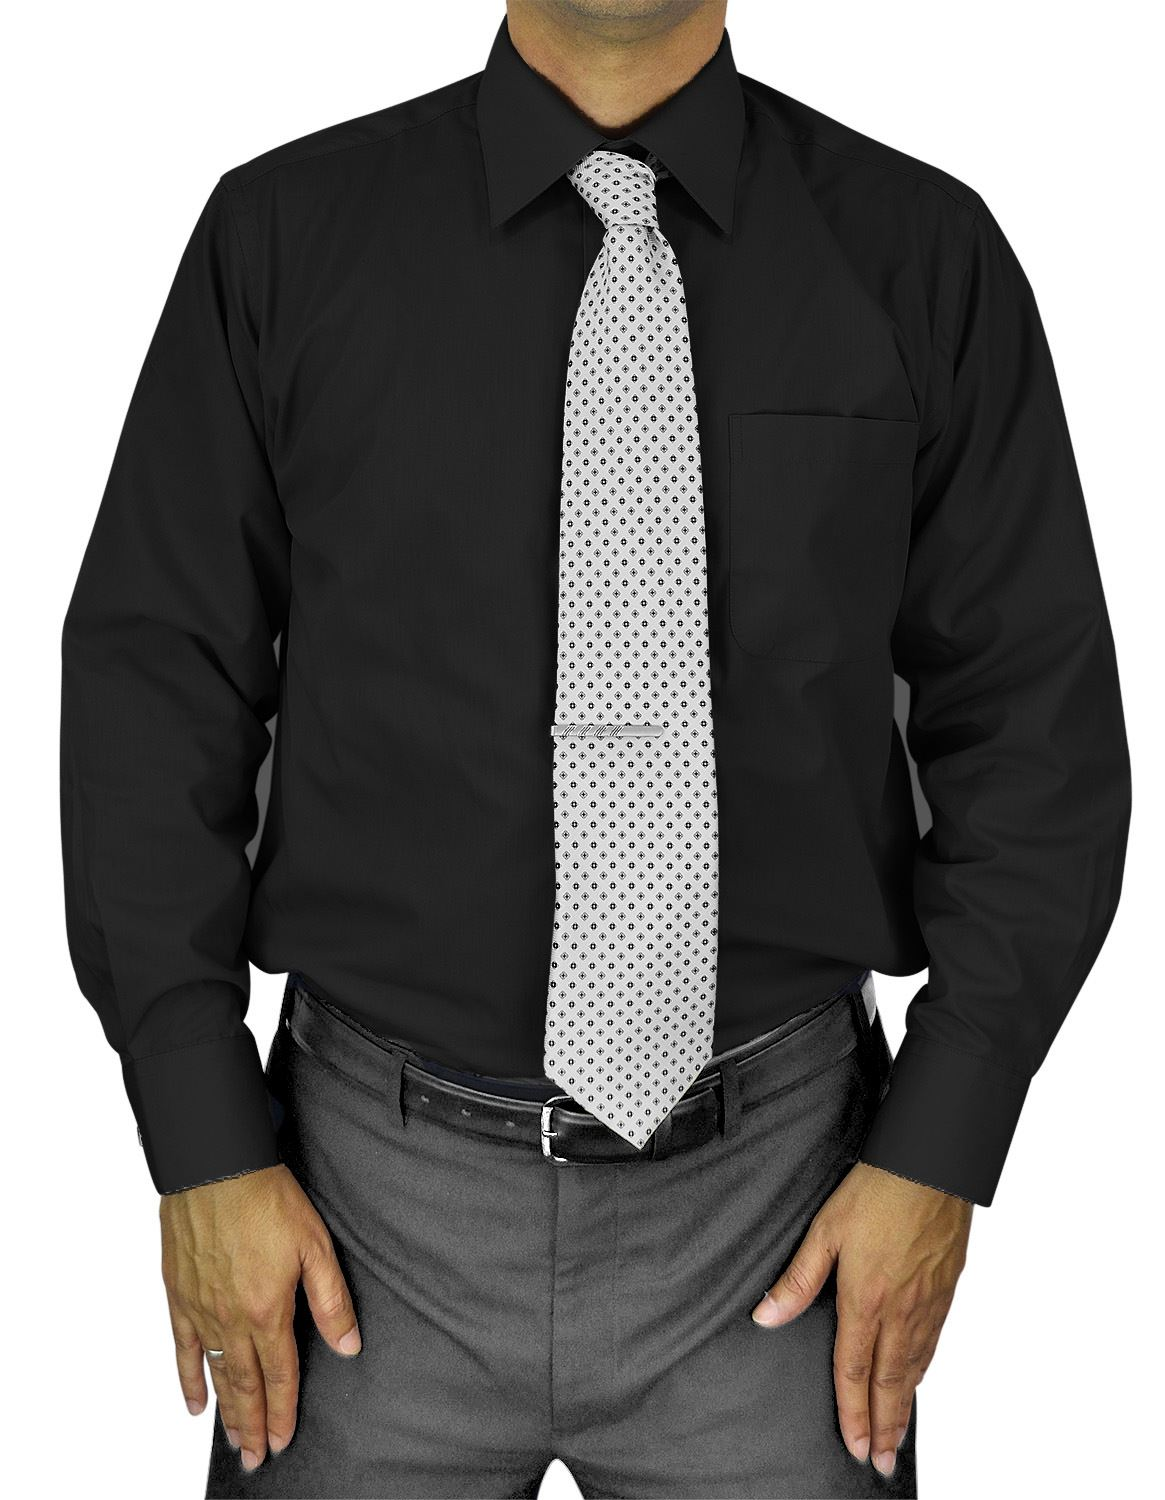 Mens Dress Shirt Slim and Regular Fit Office Casual French Cuff Moda Di Raza - Black 14.5